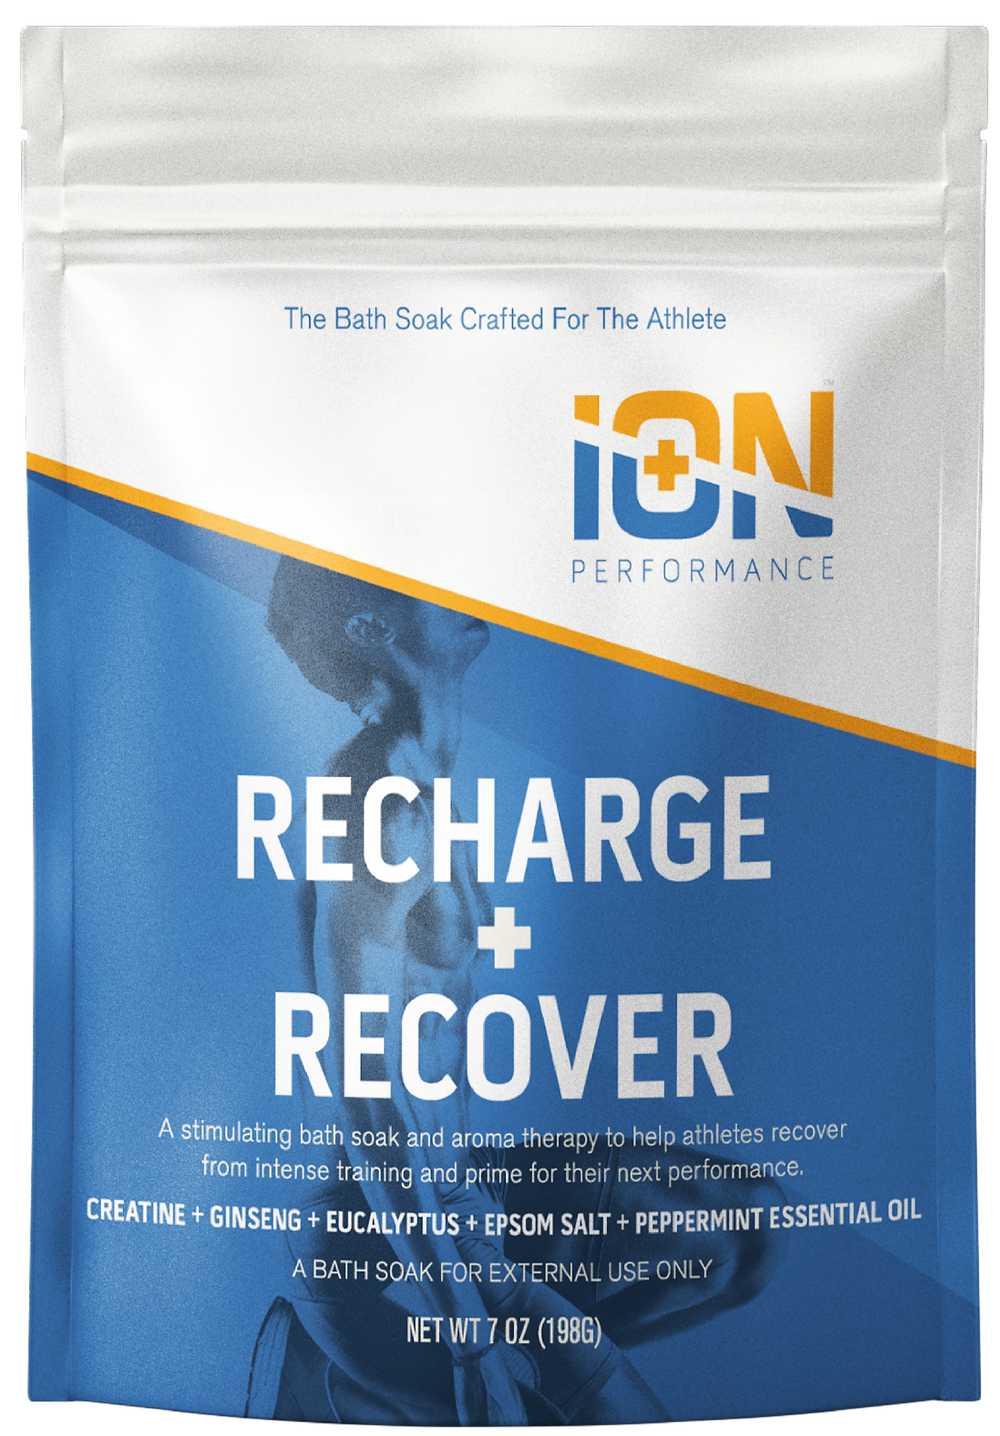 iON Performance Recharge + Recover Soak